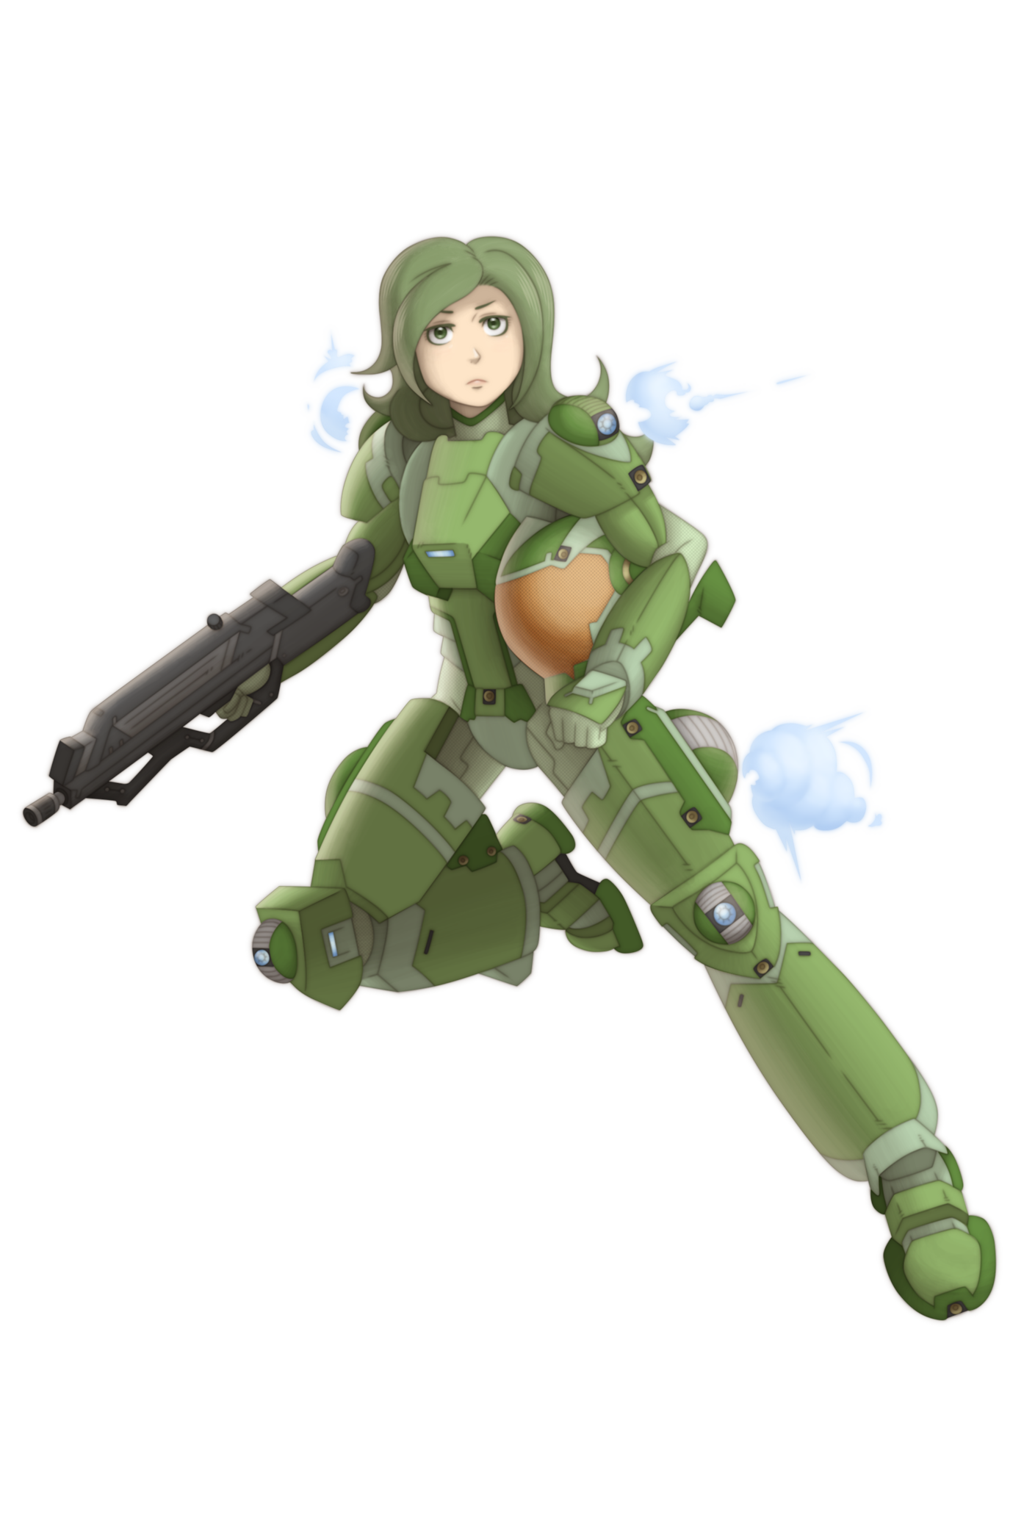 4157062_142316641271_space_ryouko_by_xkick-d75j3ip.png